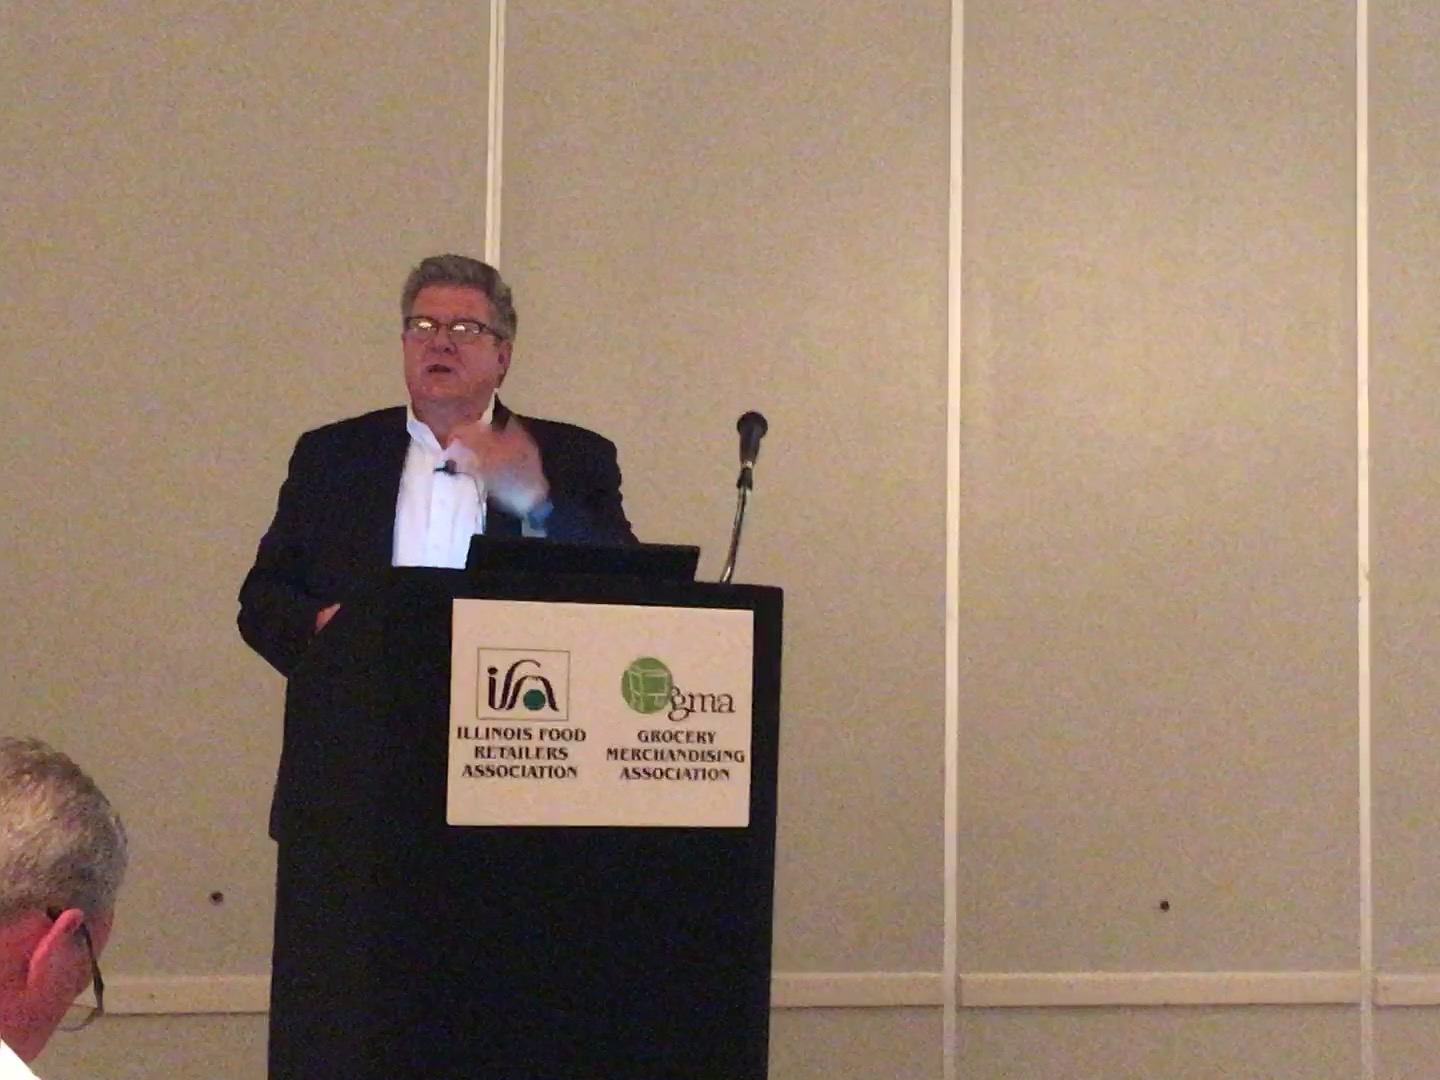 AWG's David Smith Shares 7 Big Opportunities for Independent Grocers